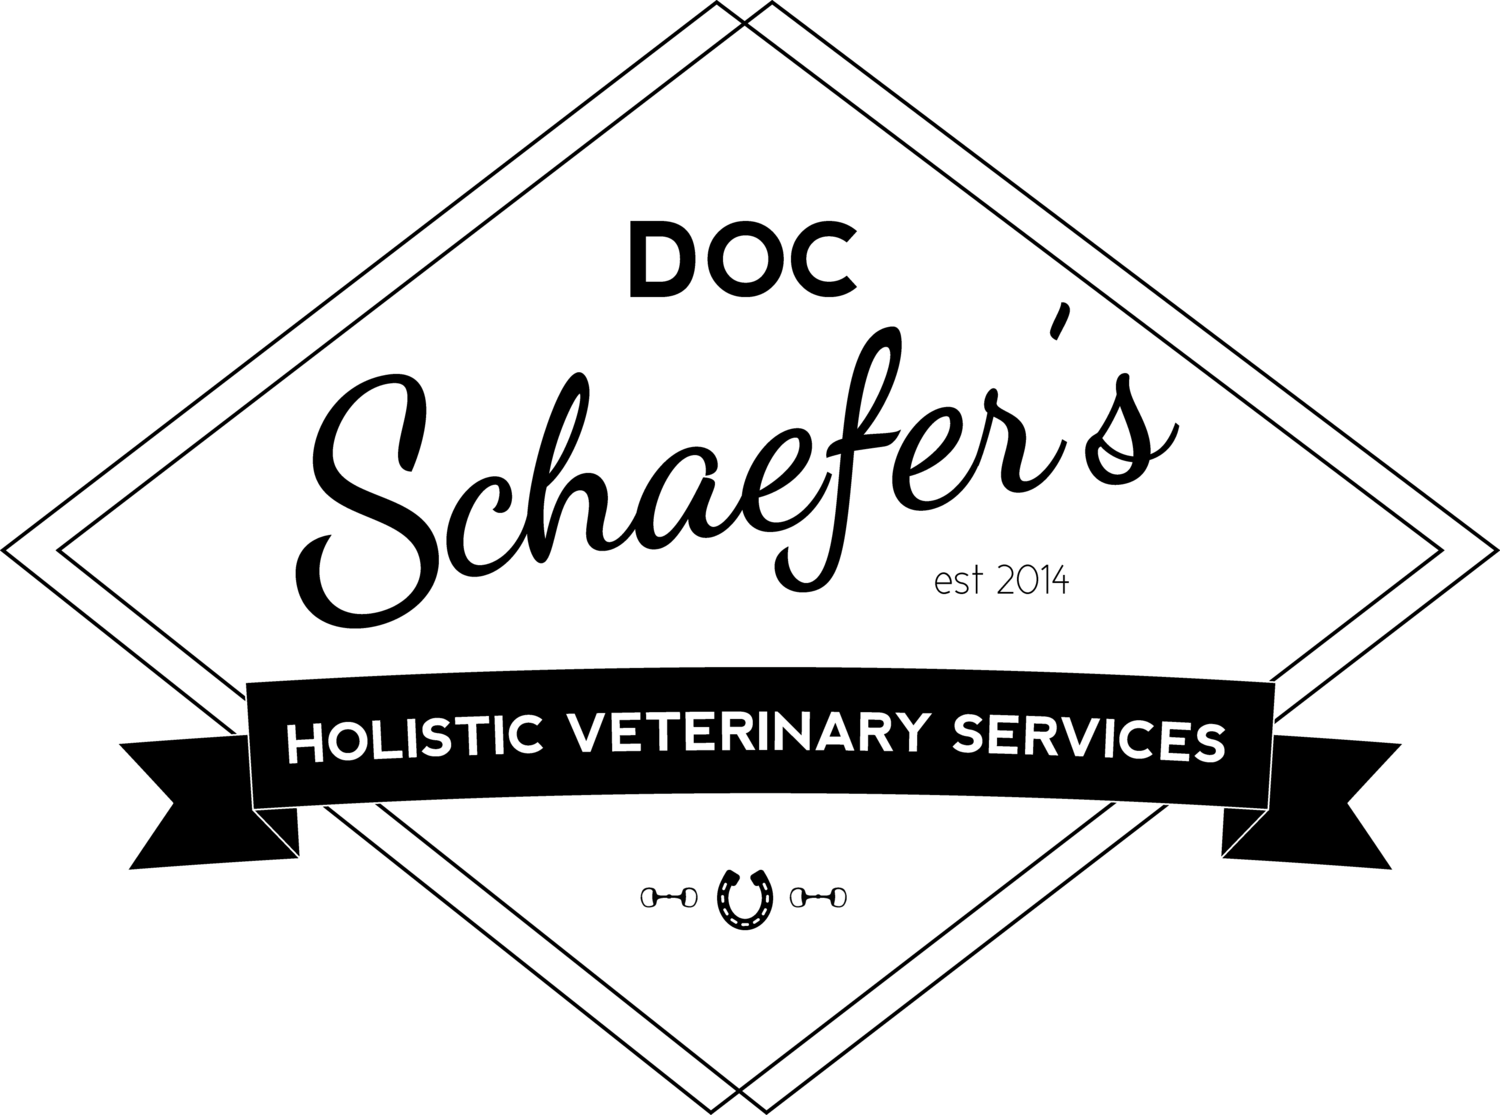 Doc Schaefer